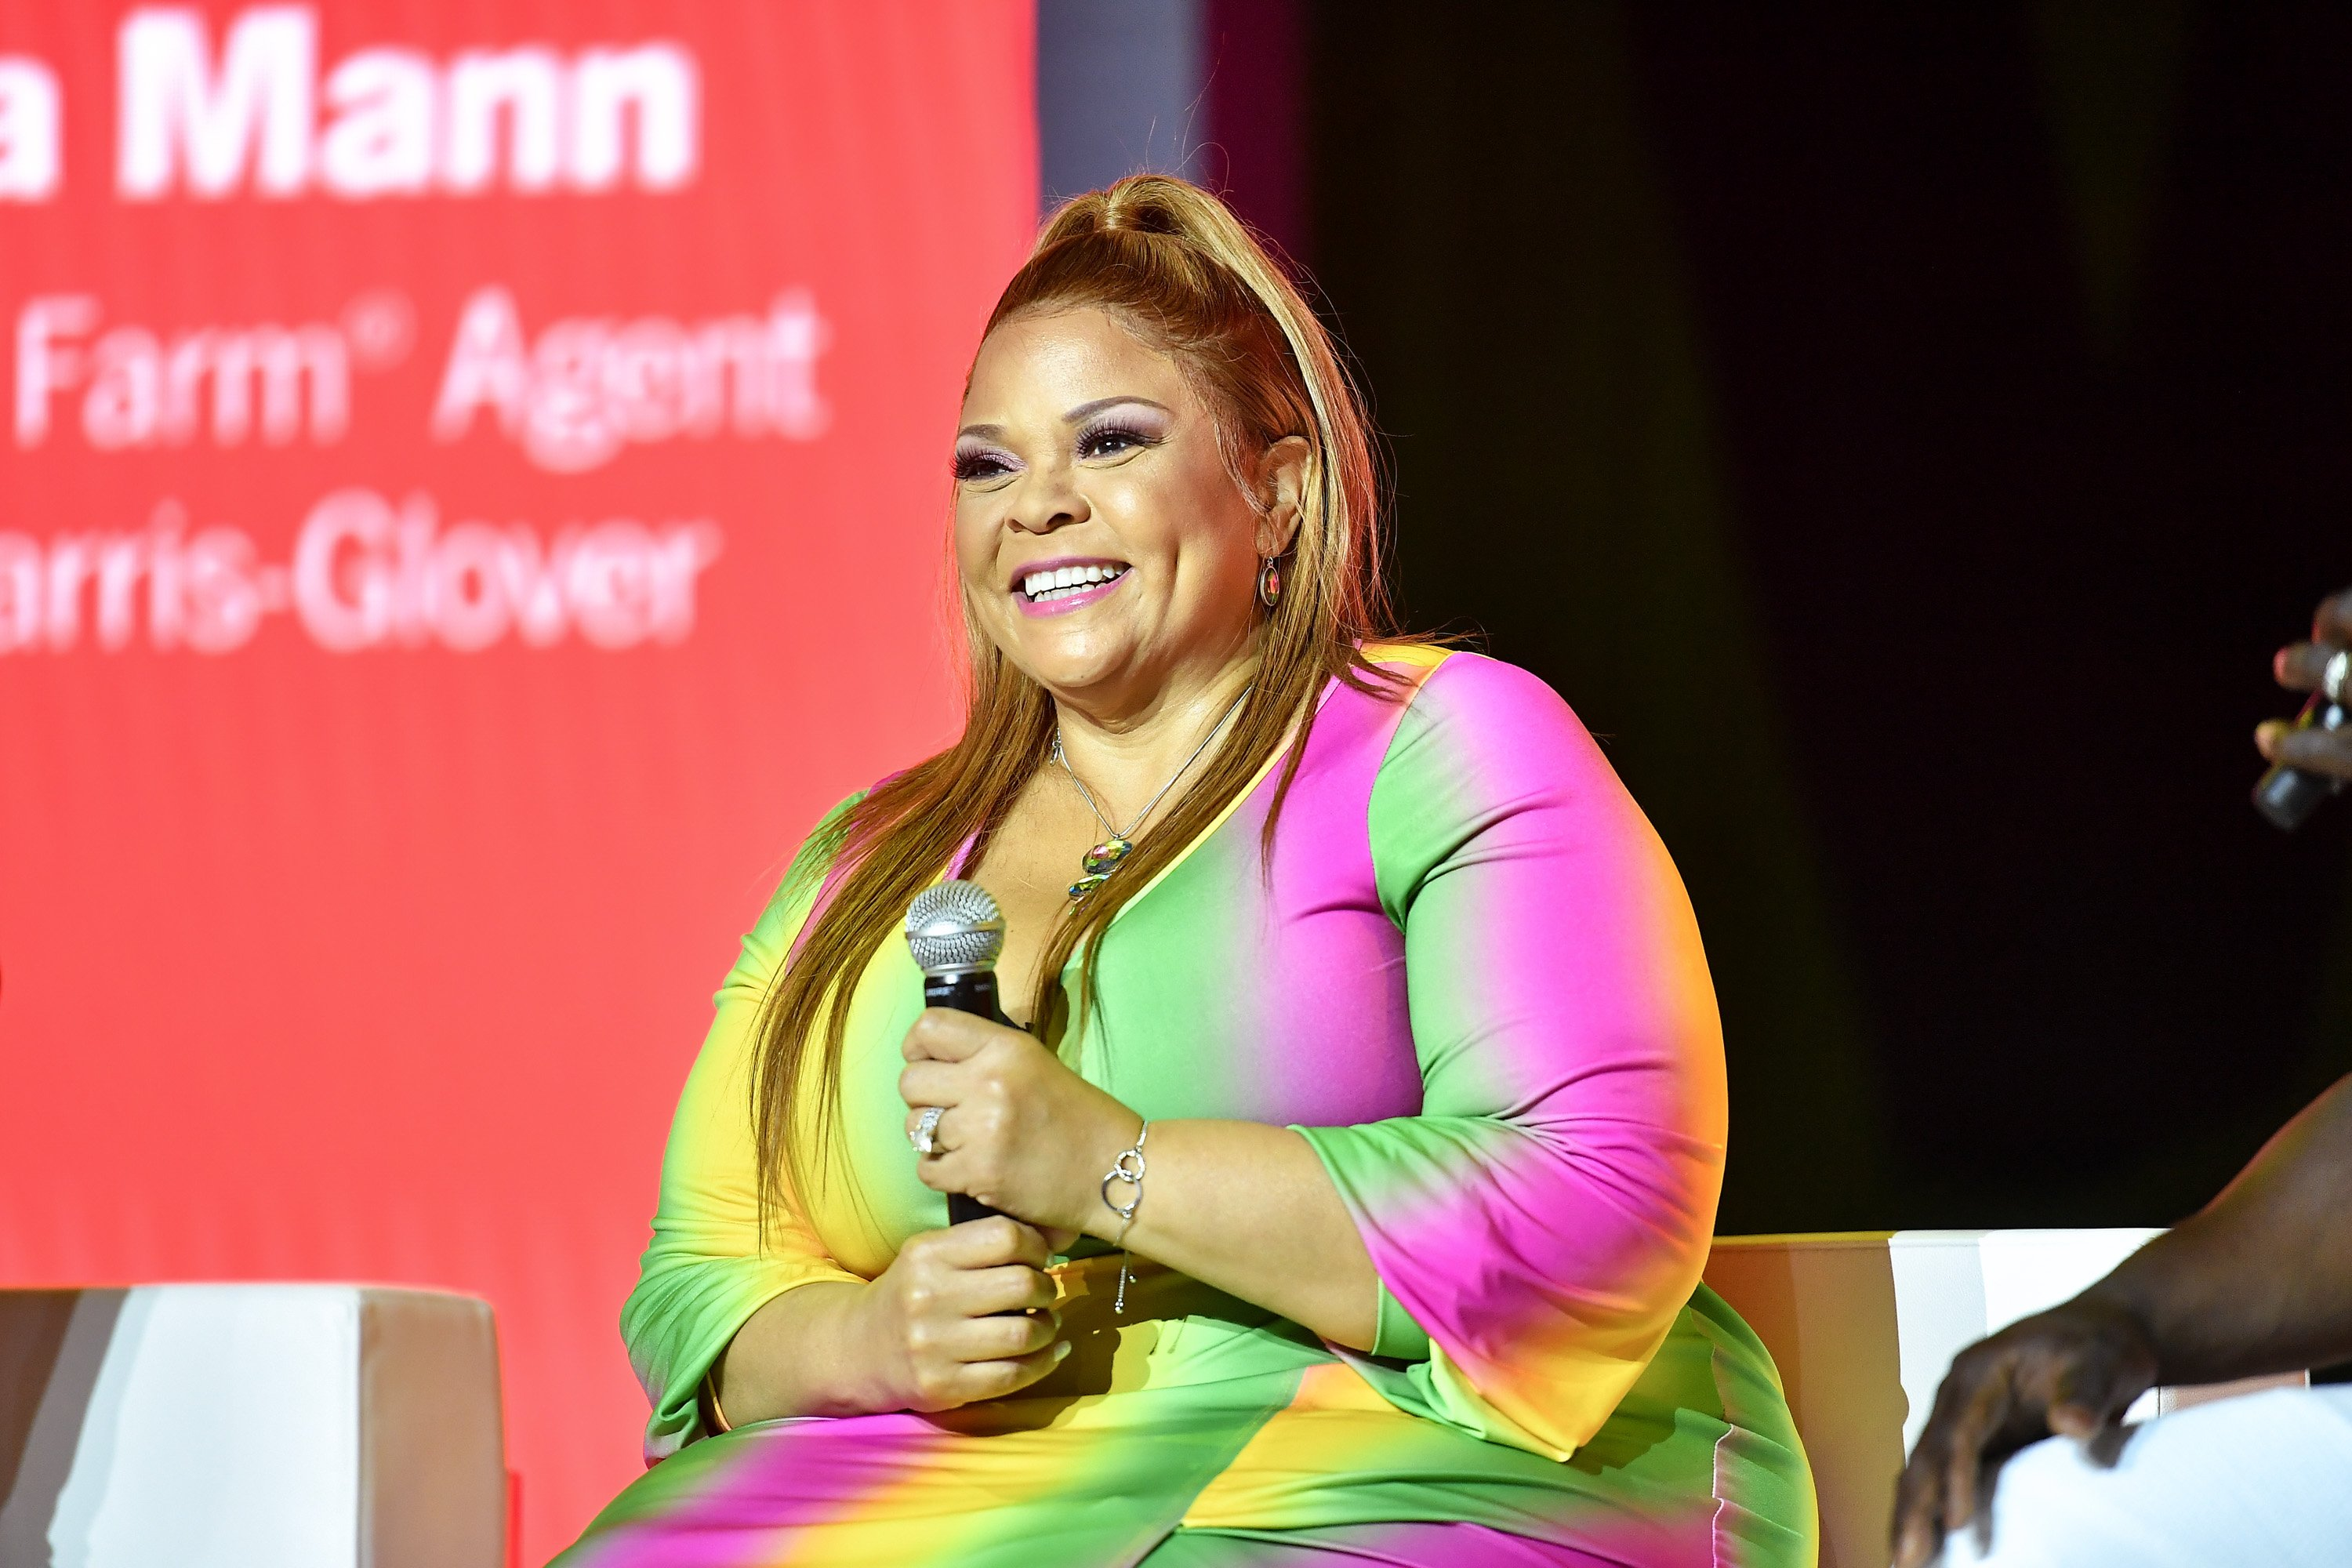 Tamela Mann speaks onstage during the 2019 Essence Festival Presented By Coca-Cola at Ernest N. Morial Convention Center on July 5, 2019 in New Orleans, Louisiana. | Photo: Getty Images